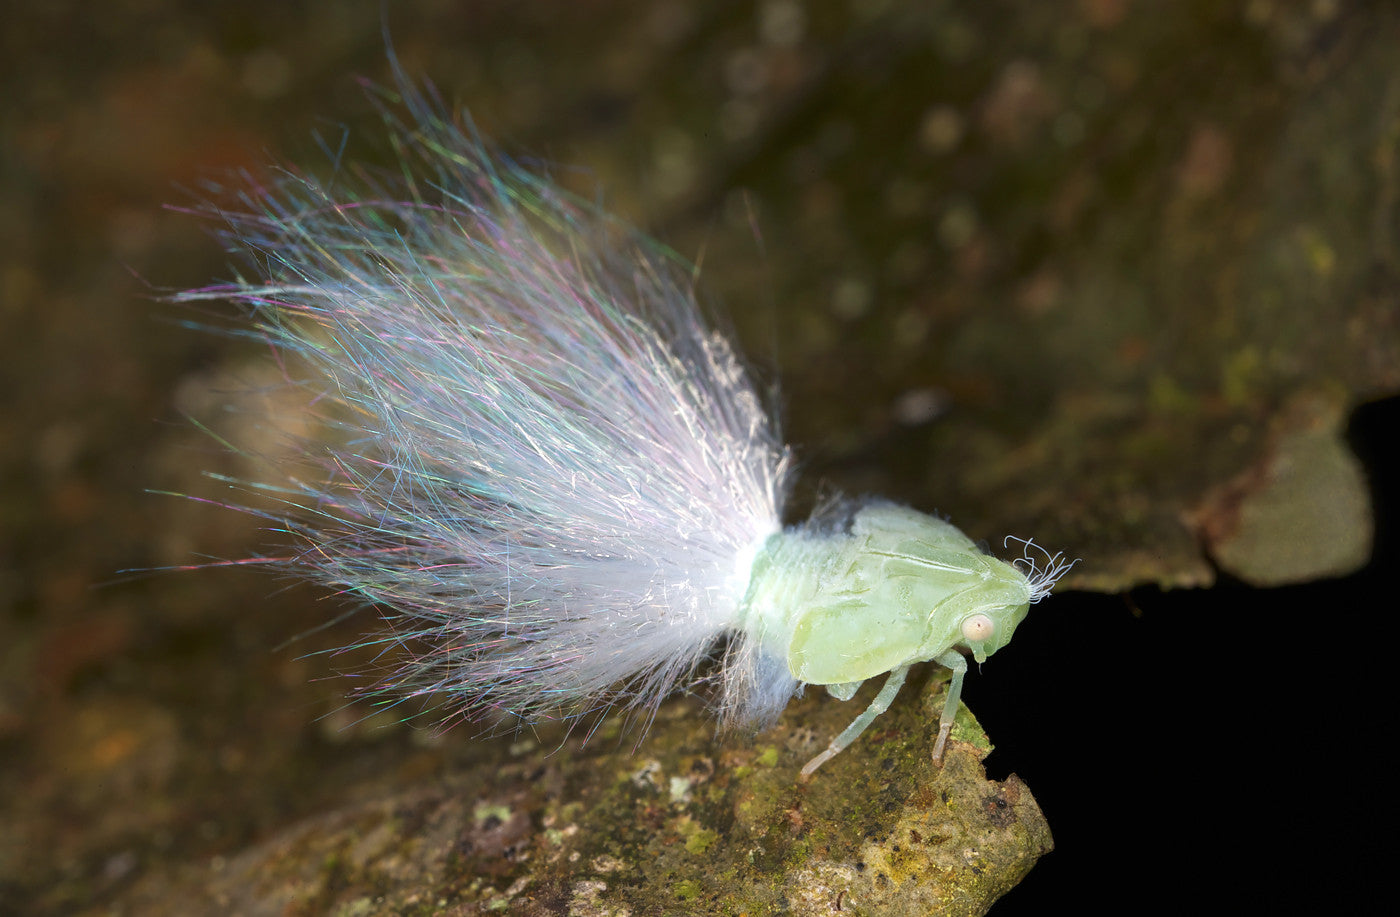 Wax-Tailed Planthopper nymph